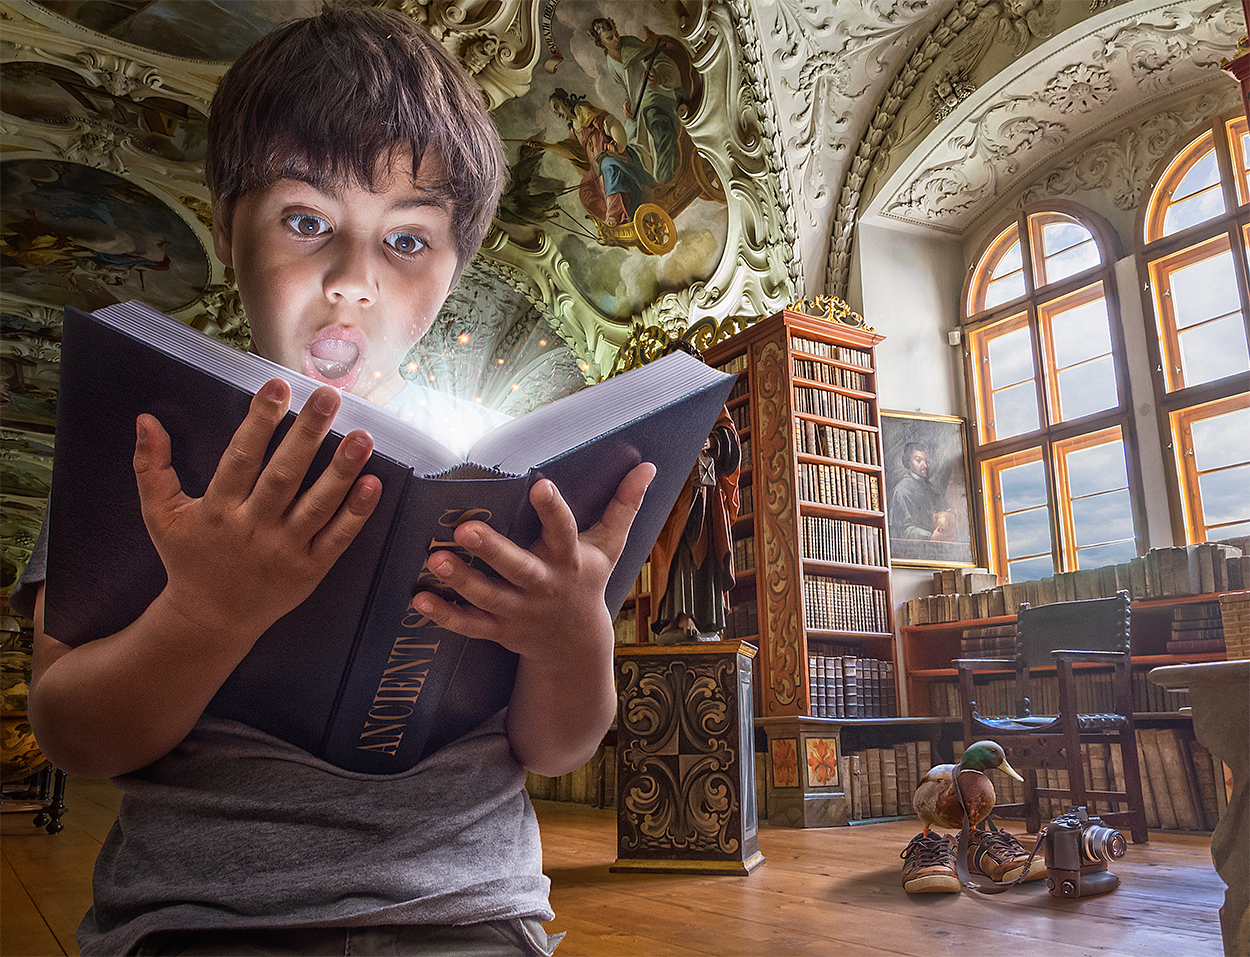 09-Library-Ancient-Spells-Adrian-Sommeling-Surreal-Photo-Manipulation-with-a-Son-s-Help-www-designstack-co